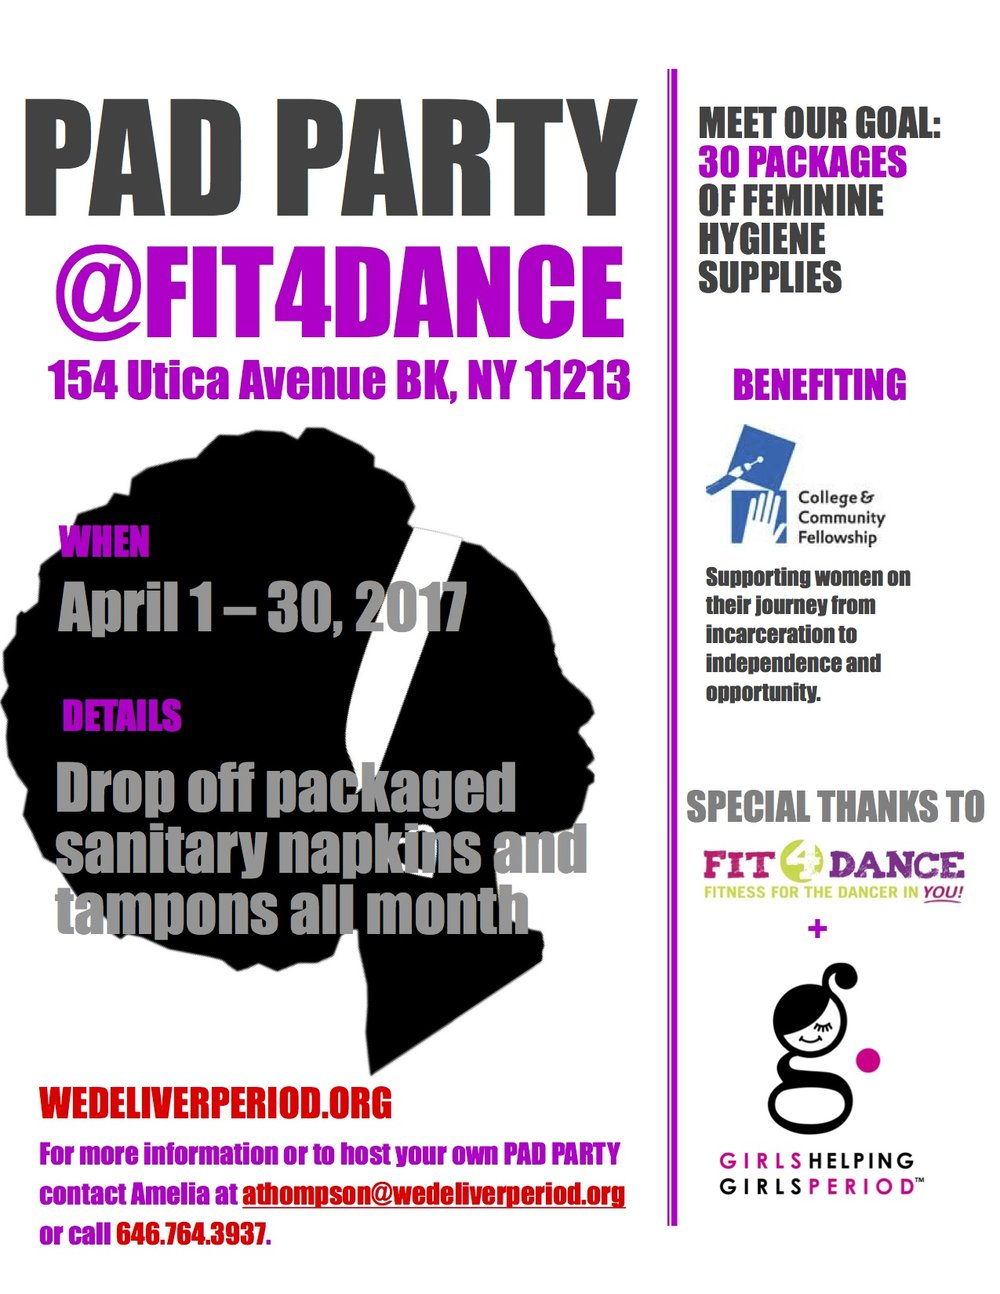 Pad Party Flyer April2017_Fit4Dance.jpg